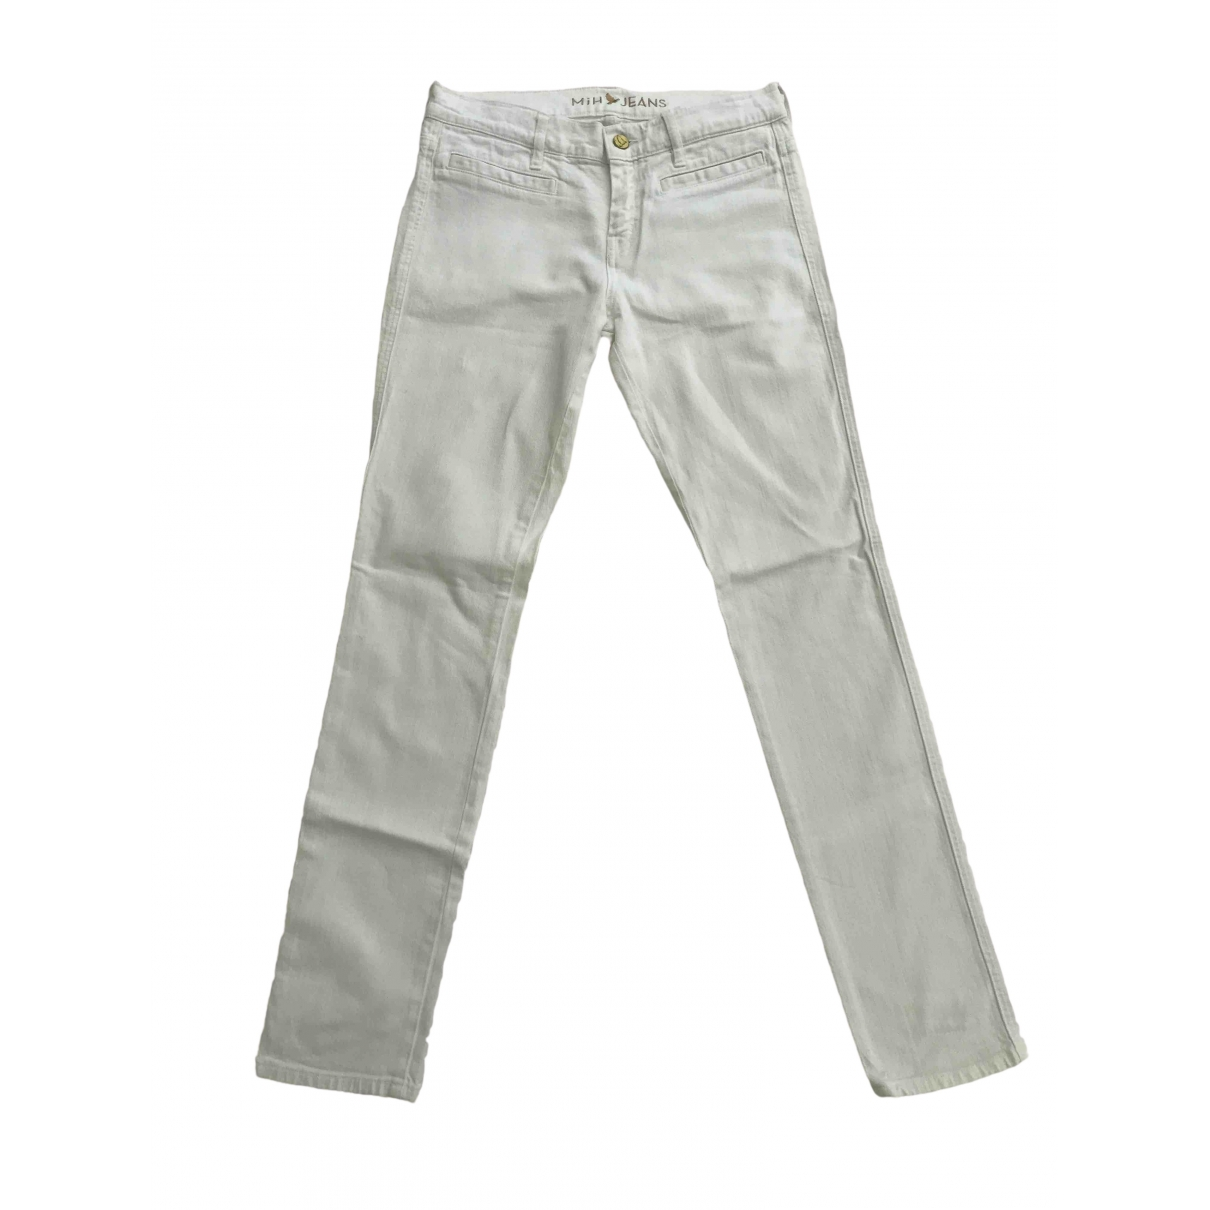 Mih Jeans \N White Denim - Jeans Jeans for Women 27 US